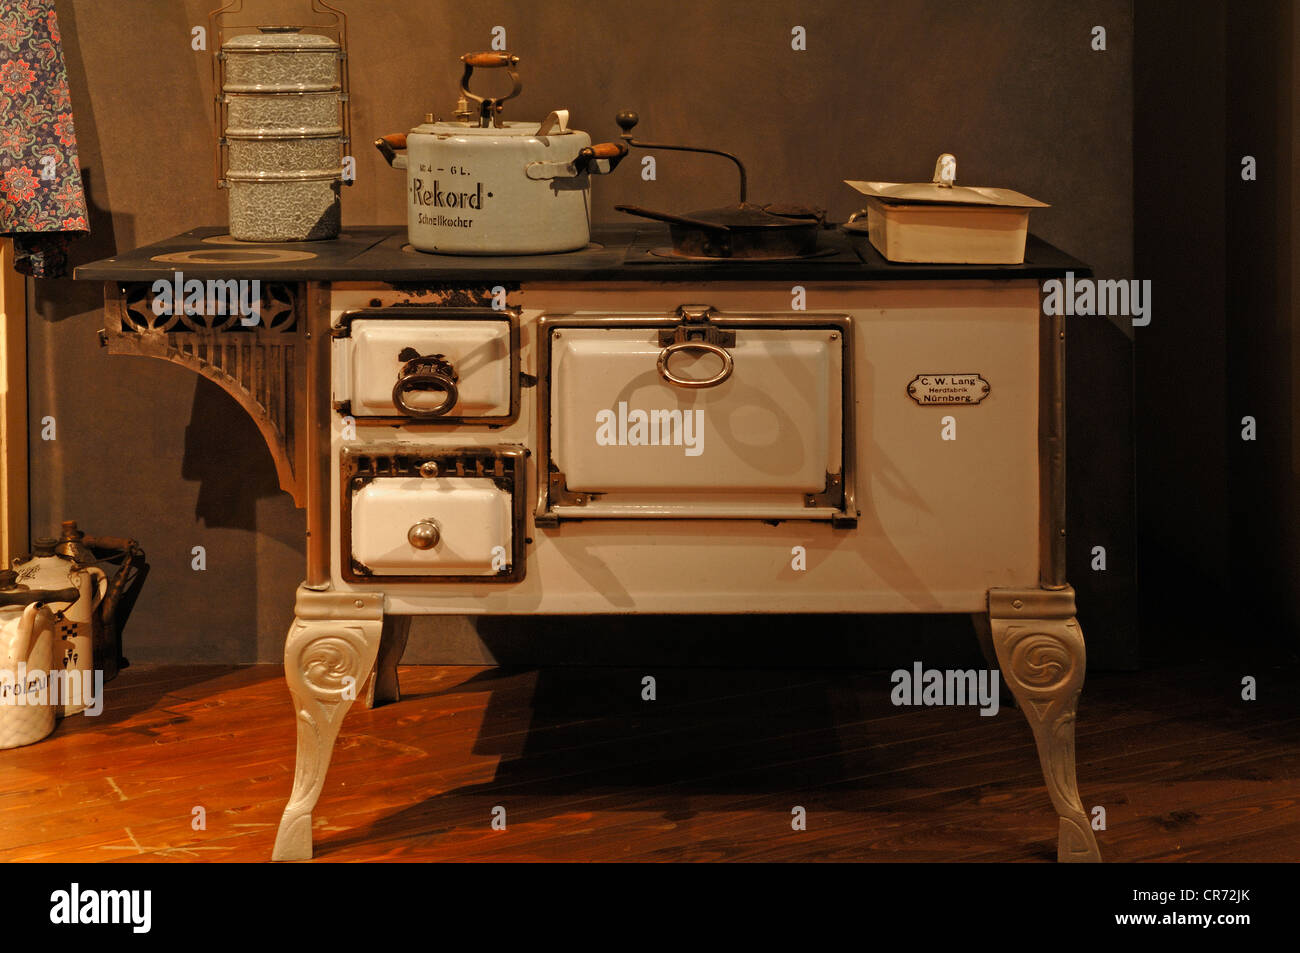 Kitchen stove from 1900, Museum for Industrial Culture, Aeussere Sulzbacher Strasse 60-62, Nuremberg, Middle Franconia, - Stock Image